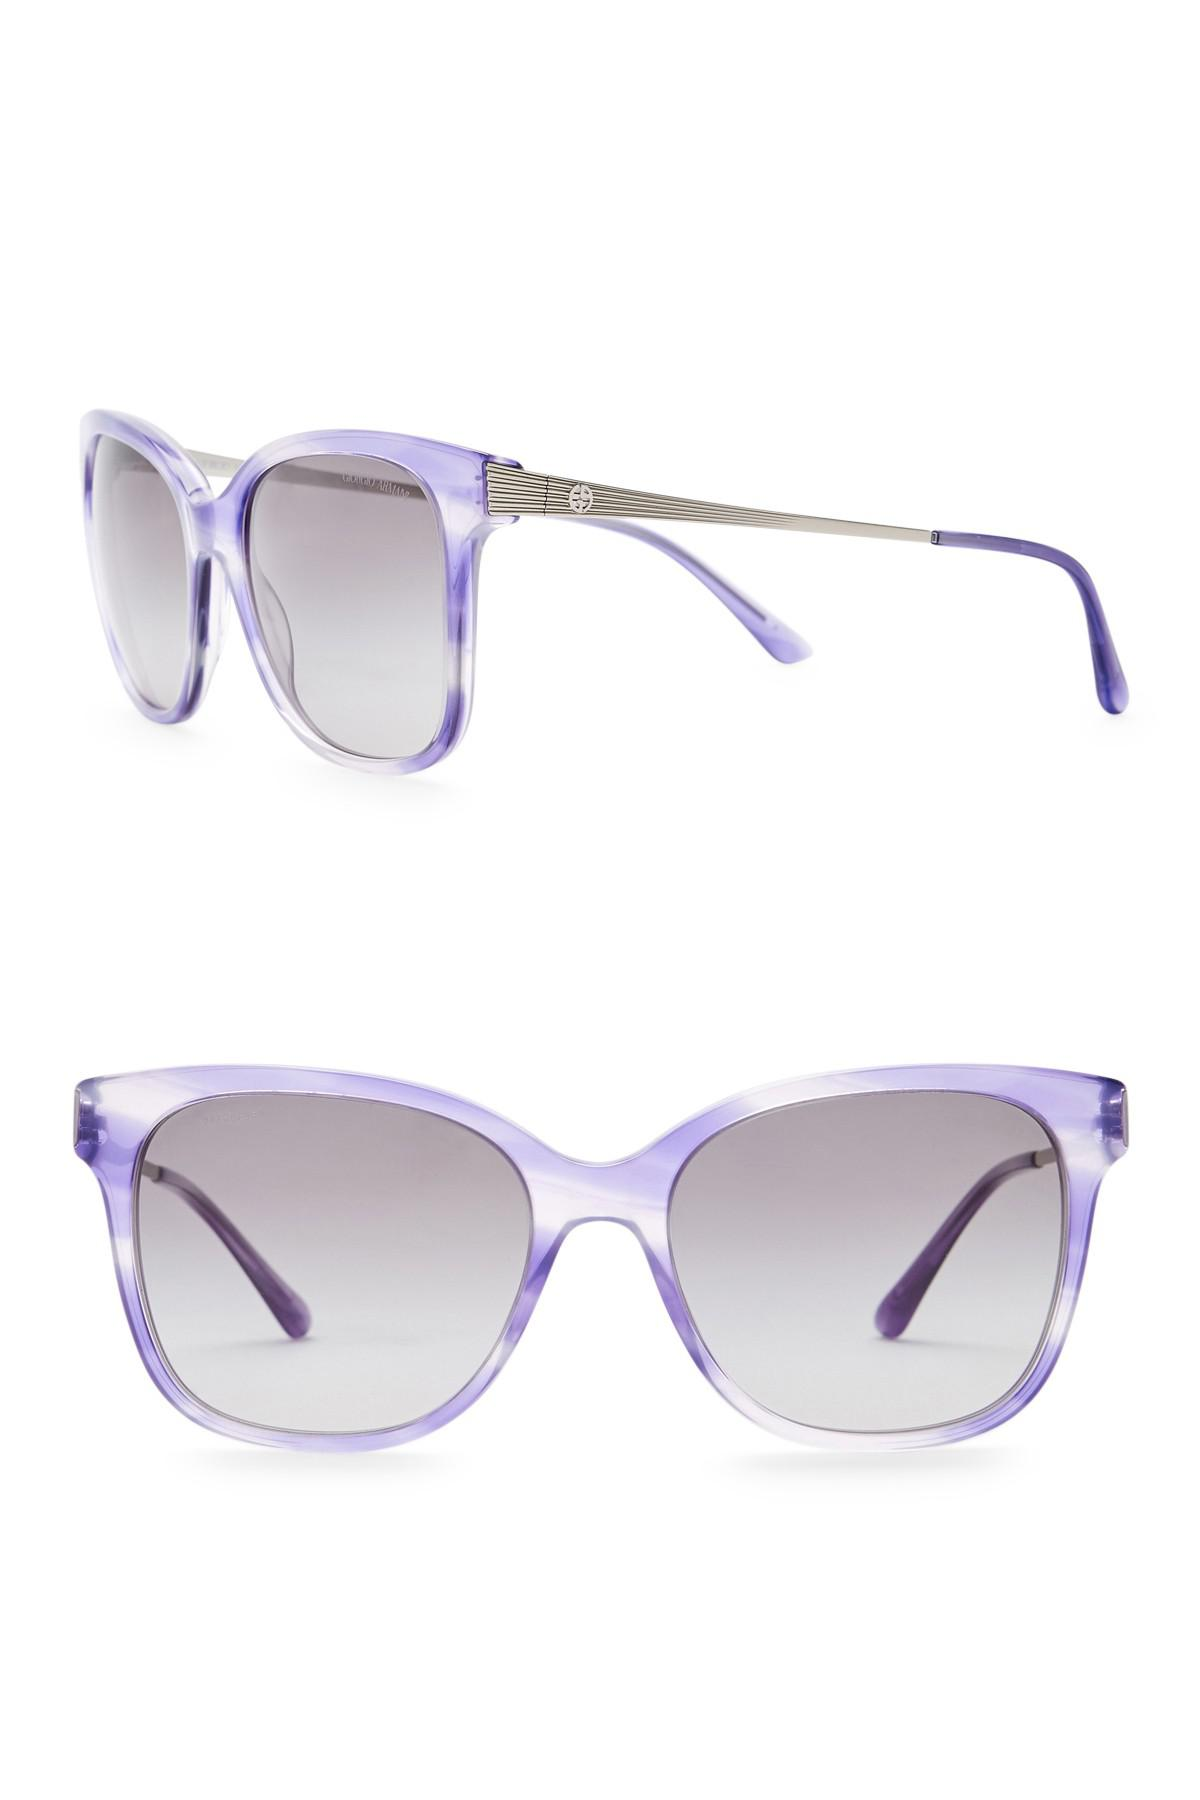 9484b9c3b15 Gallery. Previously sold at  Nordstrom Rack · Women s Acetate Sunglasses ...